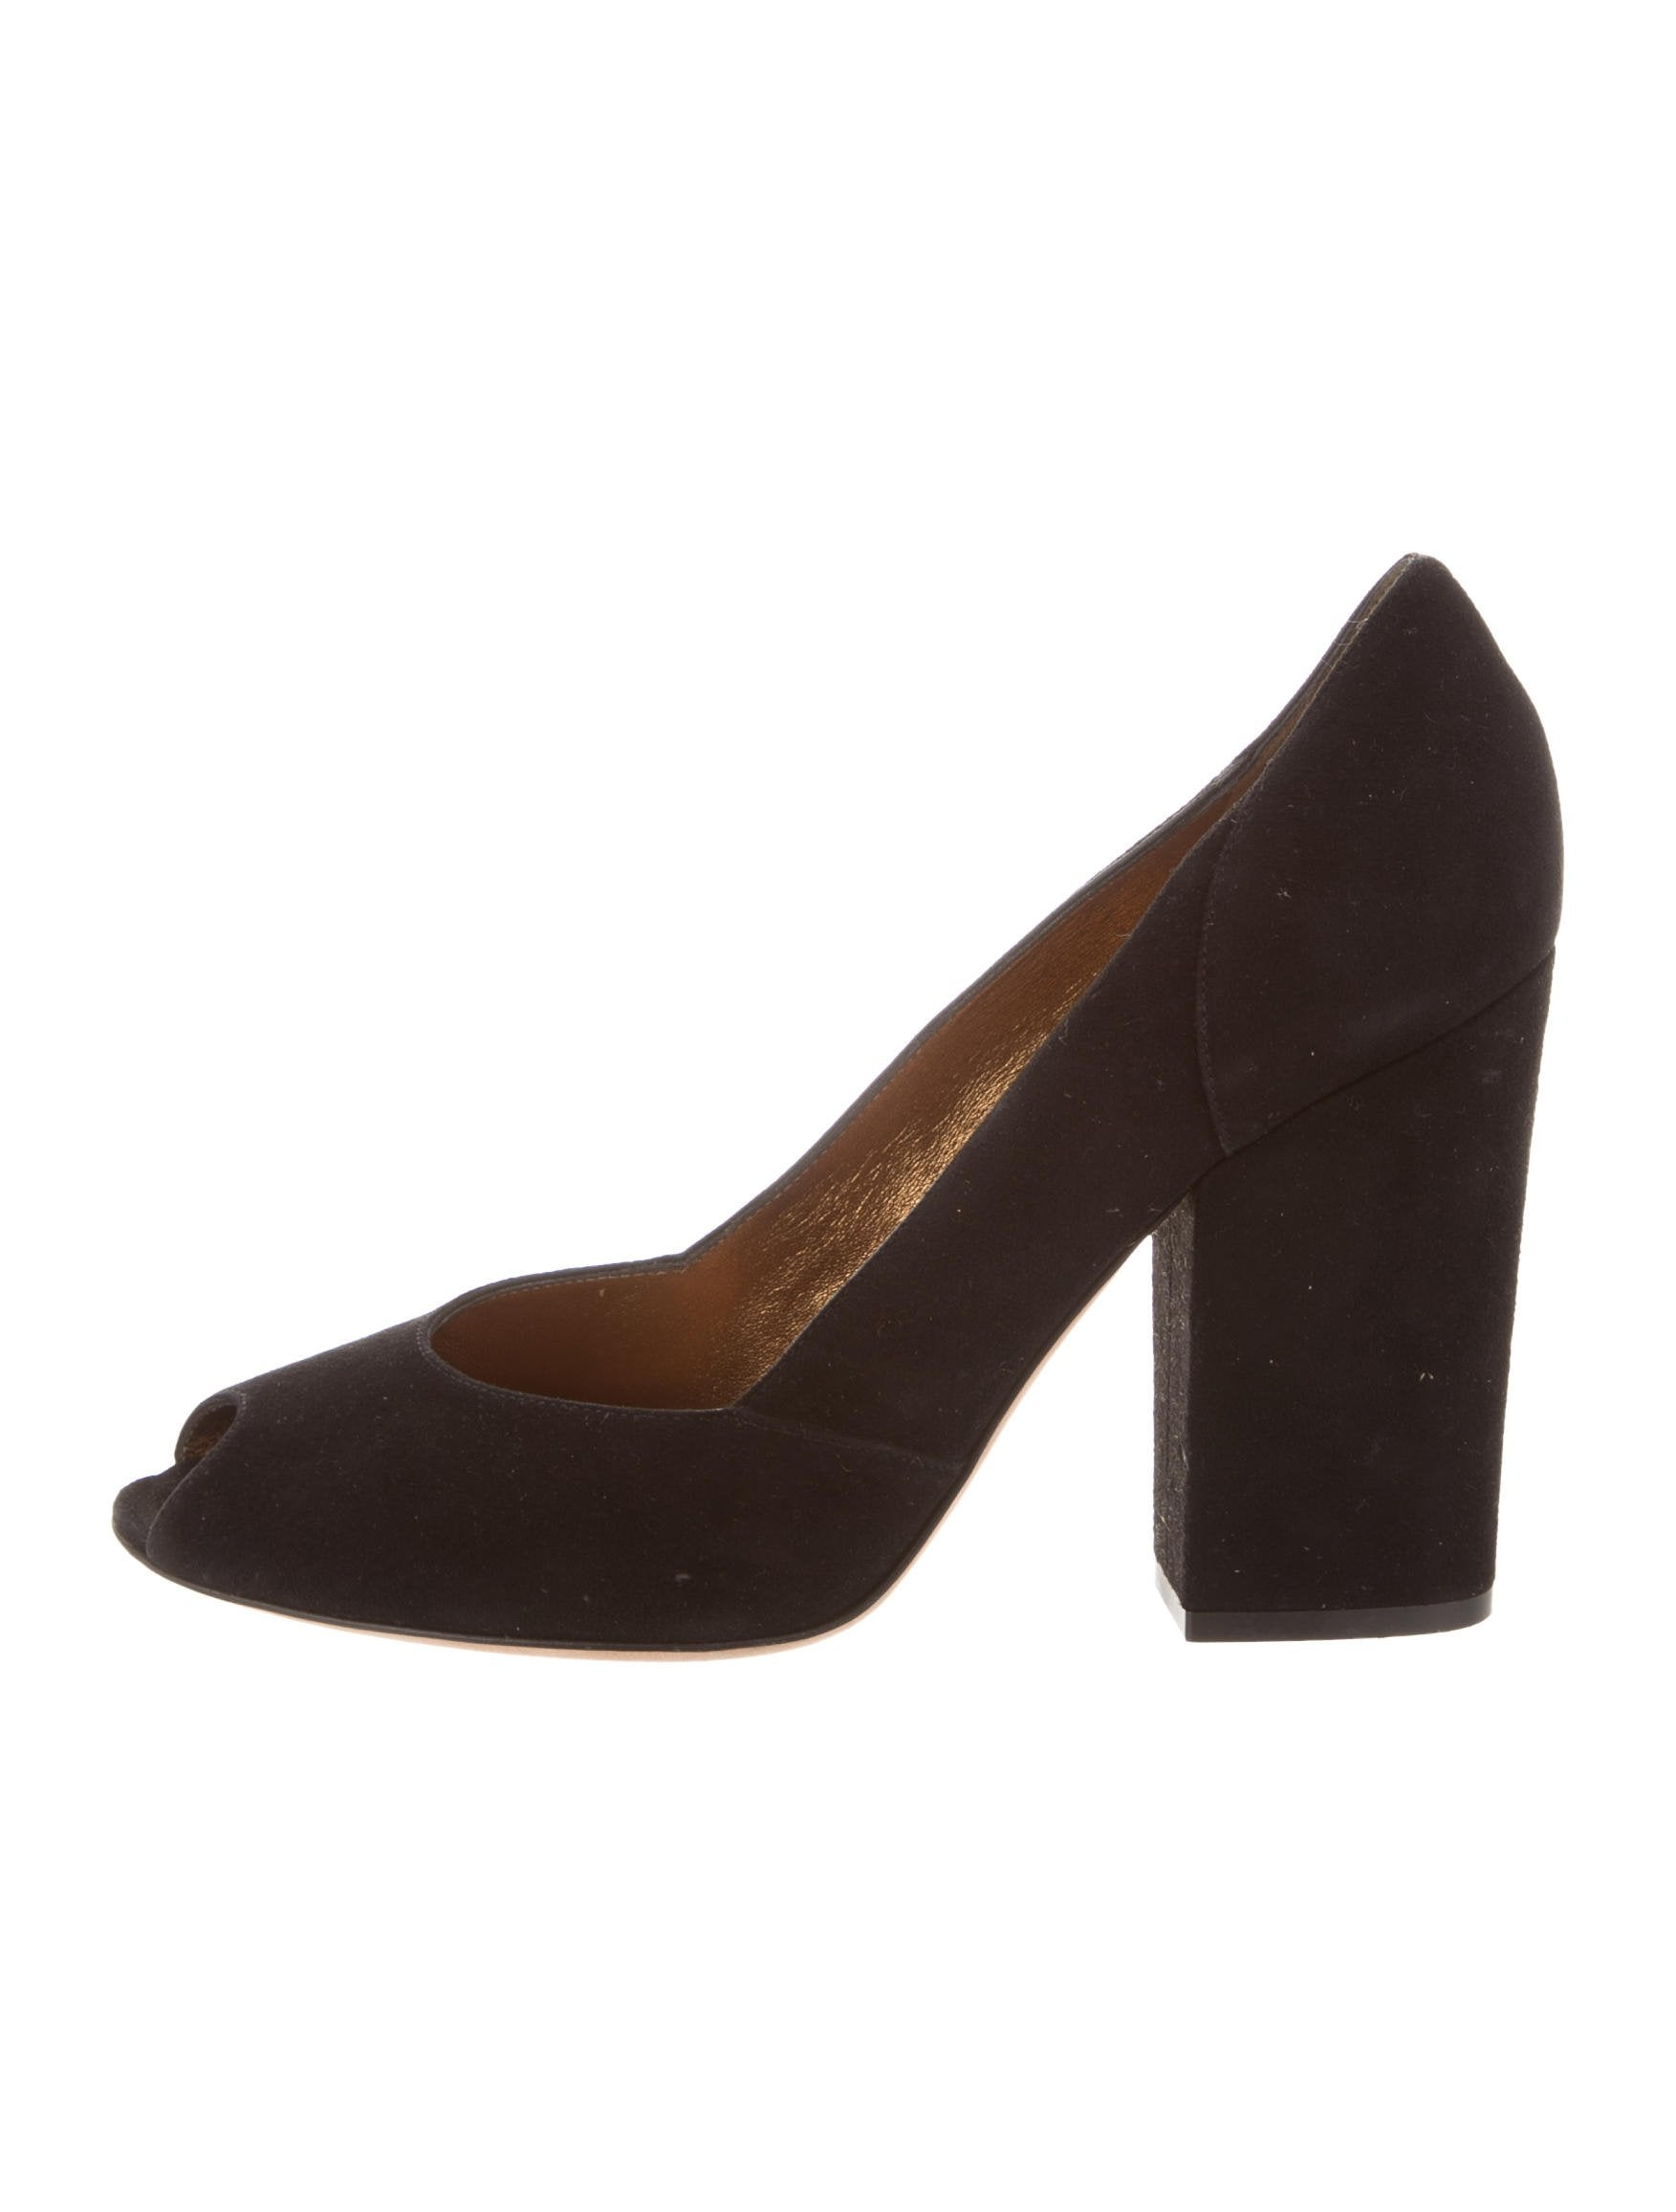 sale supply Bally Leather Peep-Toe Pumps cheap sale Cheapest 2014 unisex cheap price shop for sale discount visit JXhg9cO